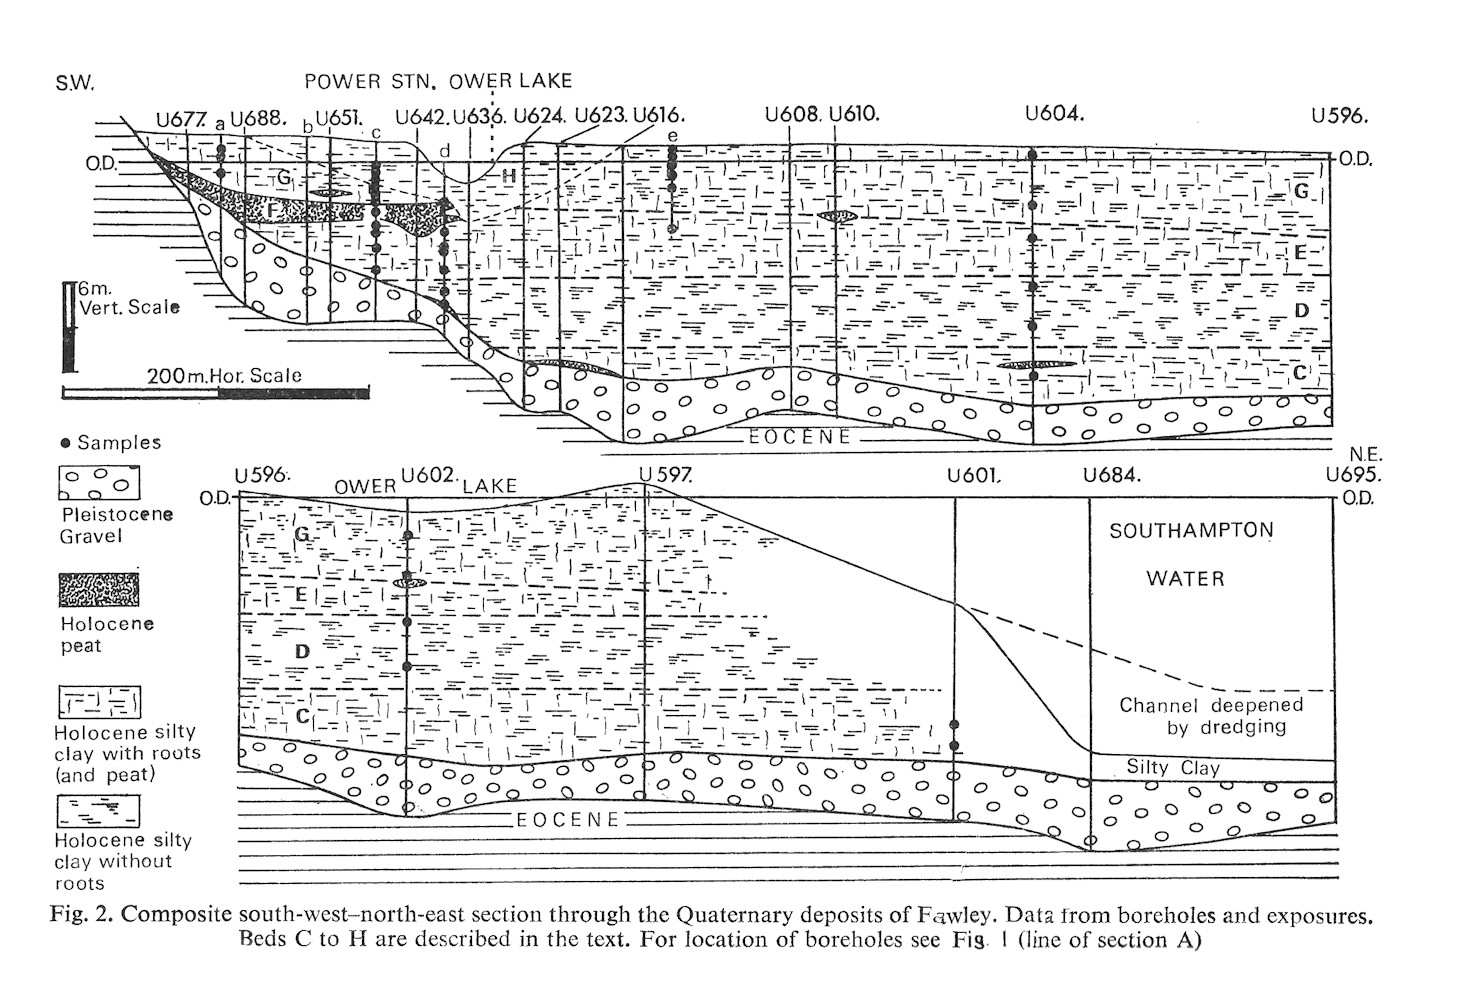 Fig. 2 - Composite south-west-north-east section through the Quaternary deposits of Fawley, Hampshire, Southampton Water